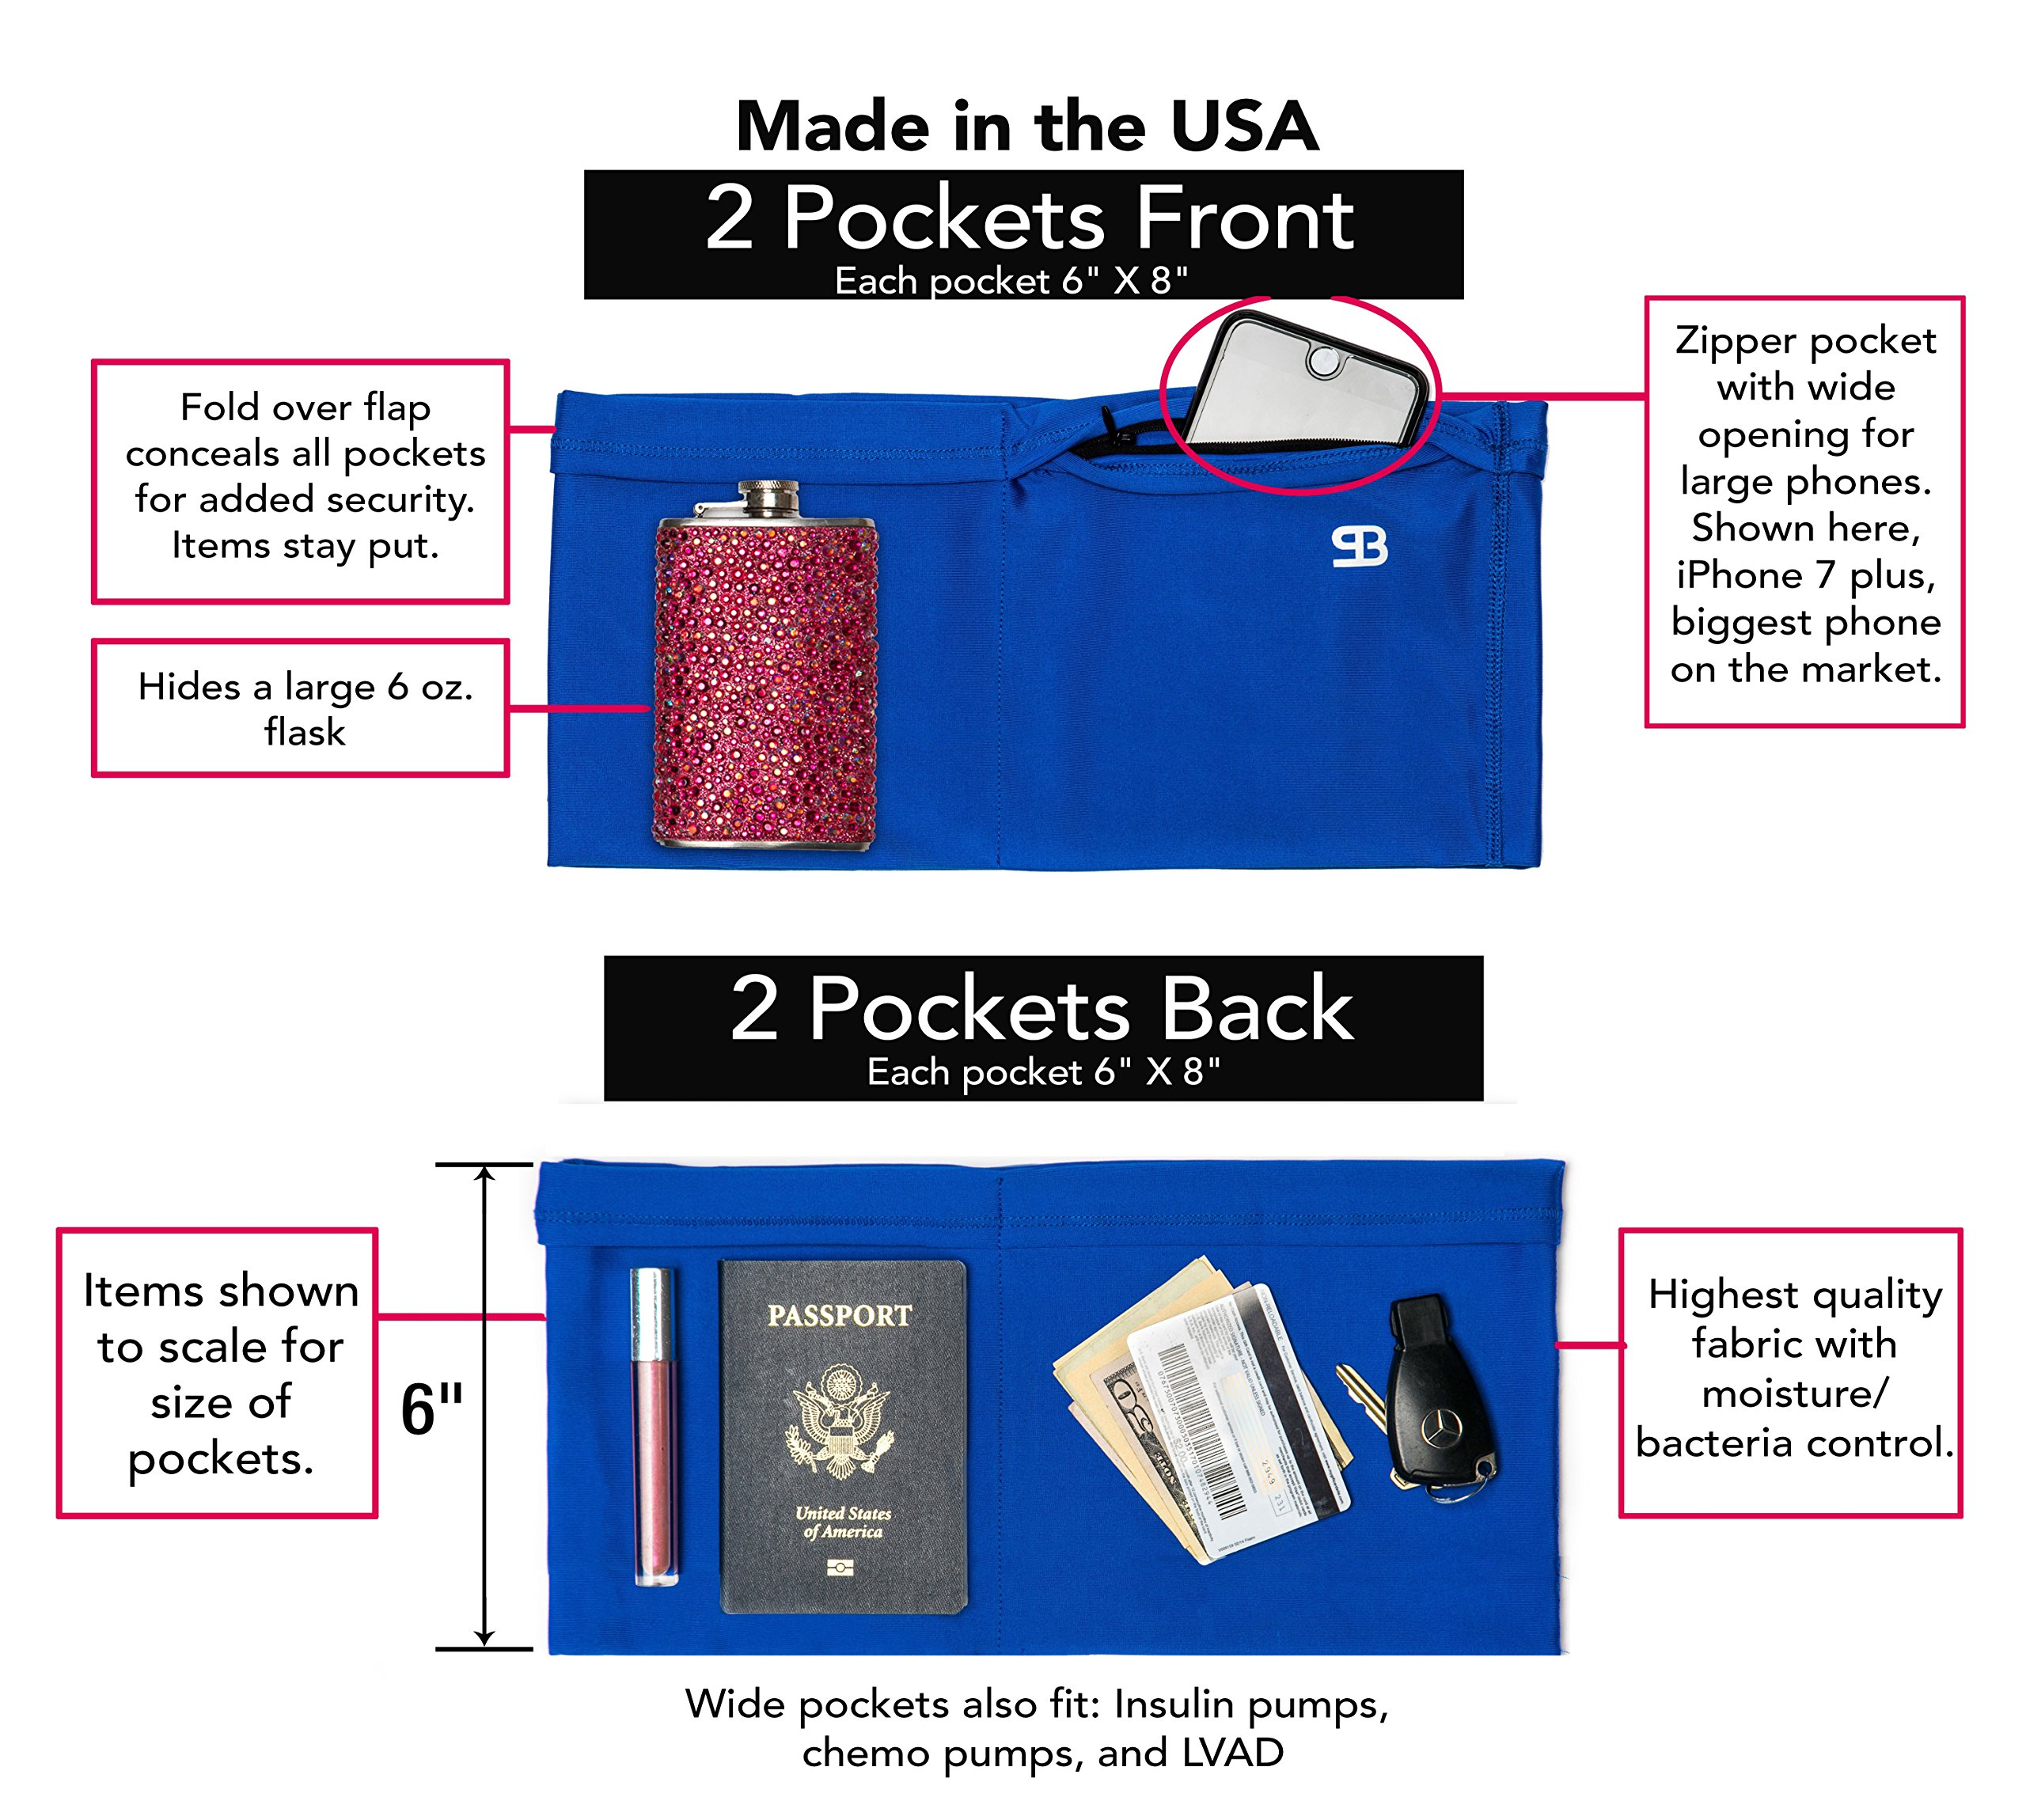 Fanny Pack, Passport Holder, Runners Belt, Waist Pack, Smart Phone Holder & Money Belt All-in-One Lifestyle Accessory for Women, with 4 Large & Secure Pockets, Zipper, Extra Wide Spandex by Stashbandz (Image #3)